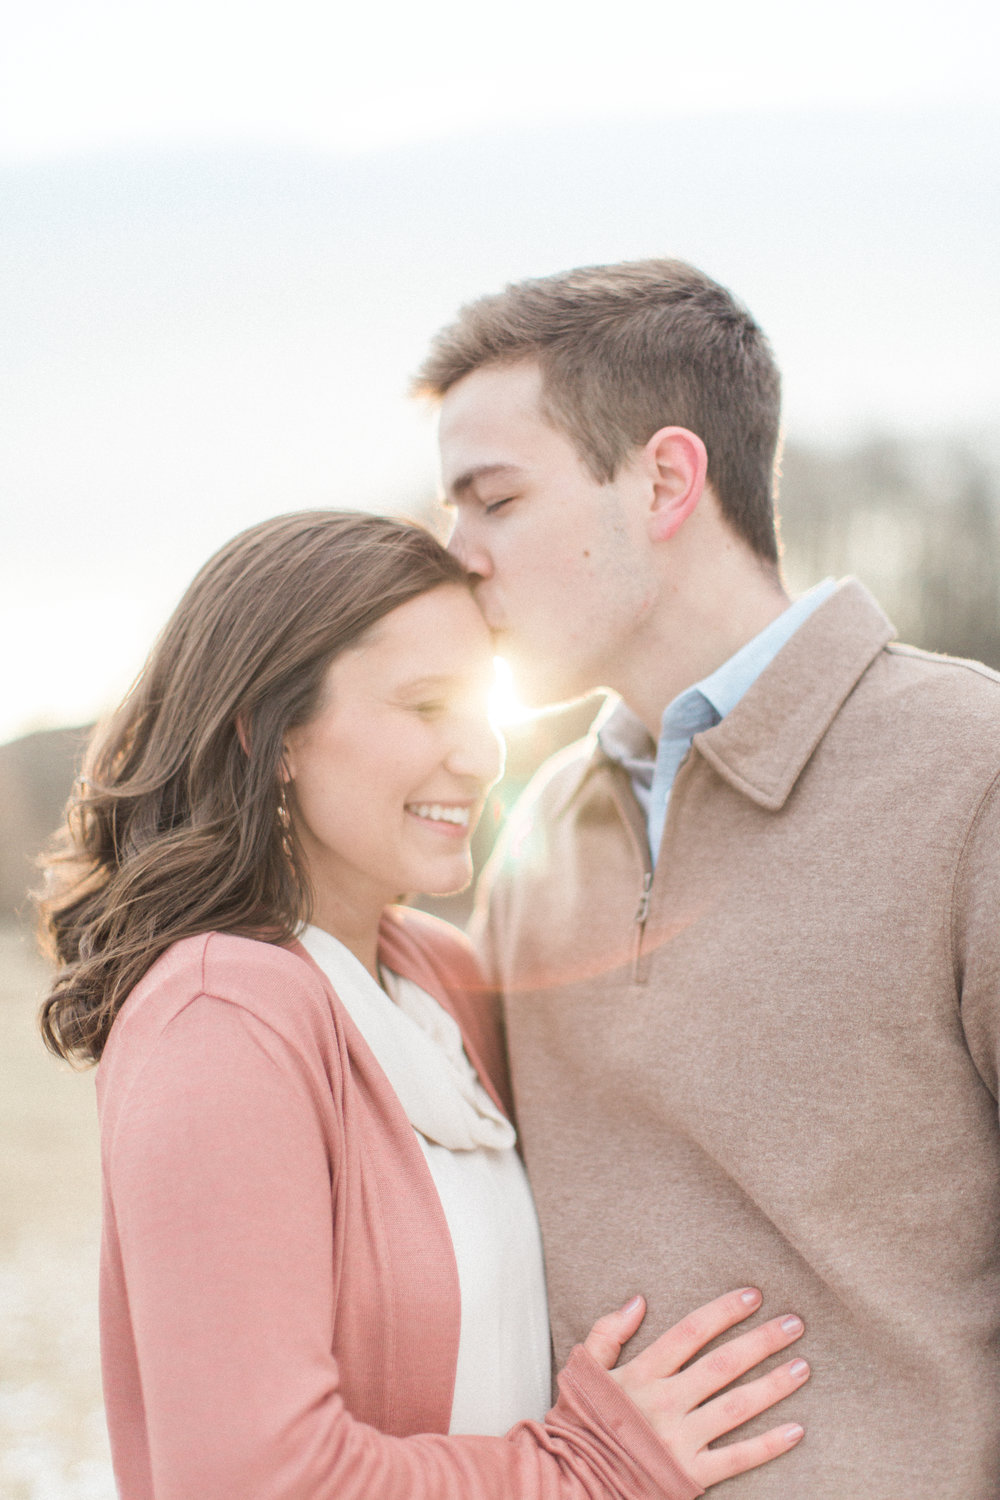 Abigail_Jill_Photography_Maryland_Engagement_Farm_Emily_Justin52.jpg